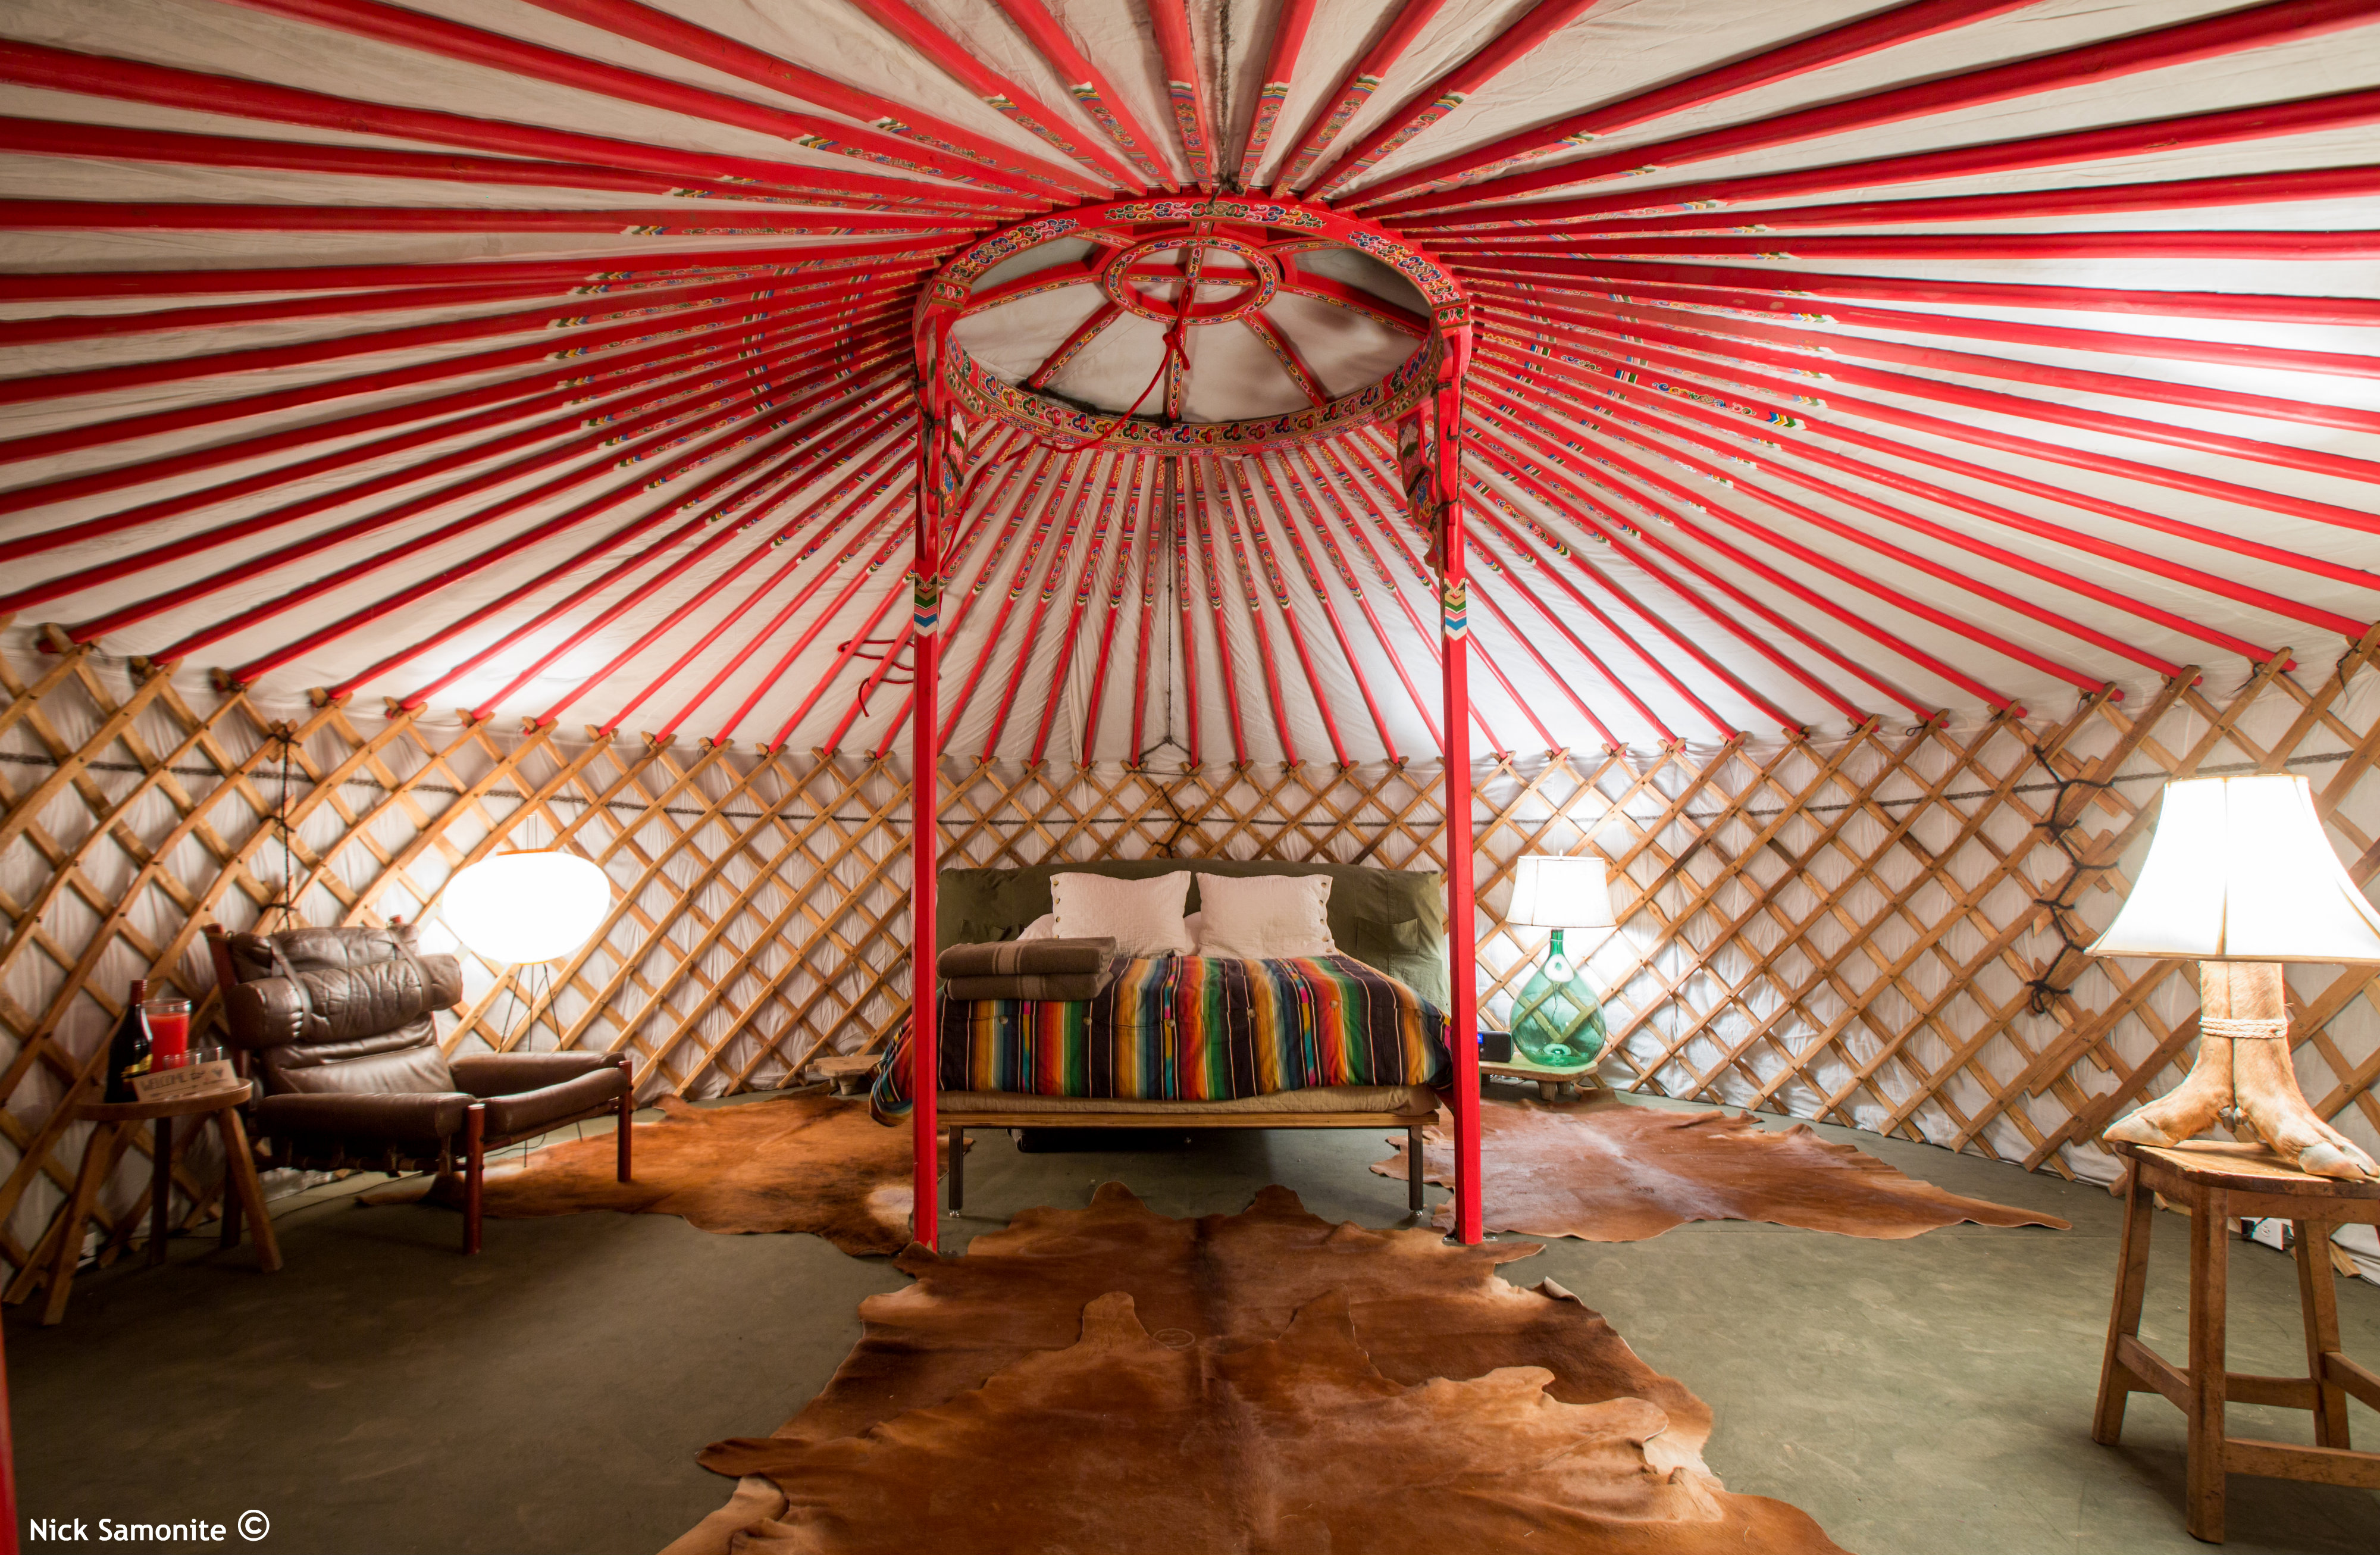 Super Yurt transformed into home